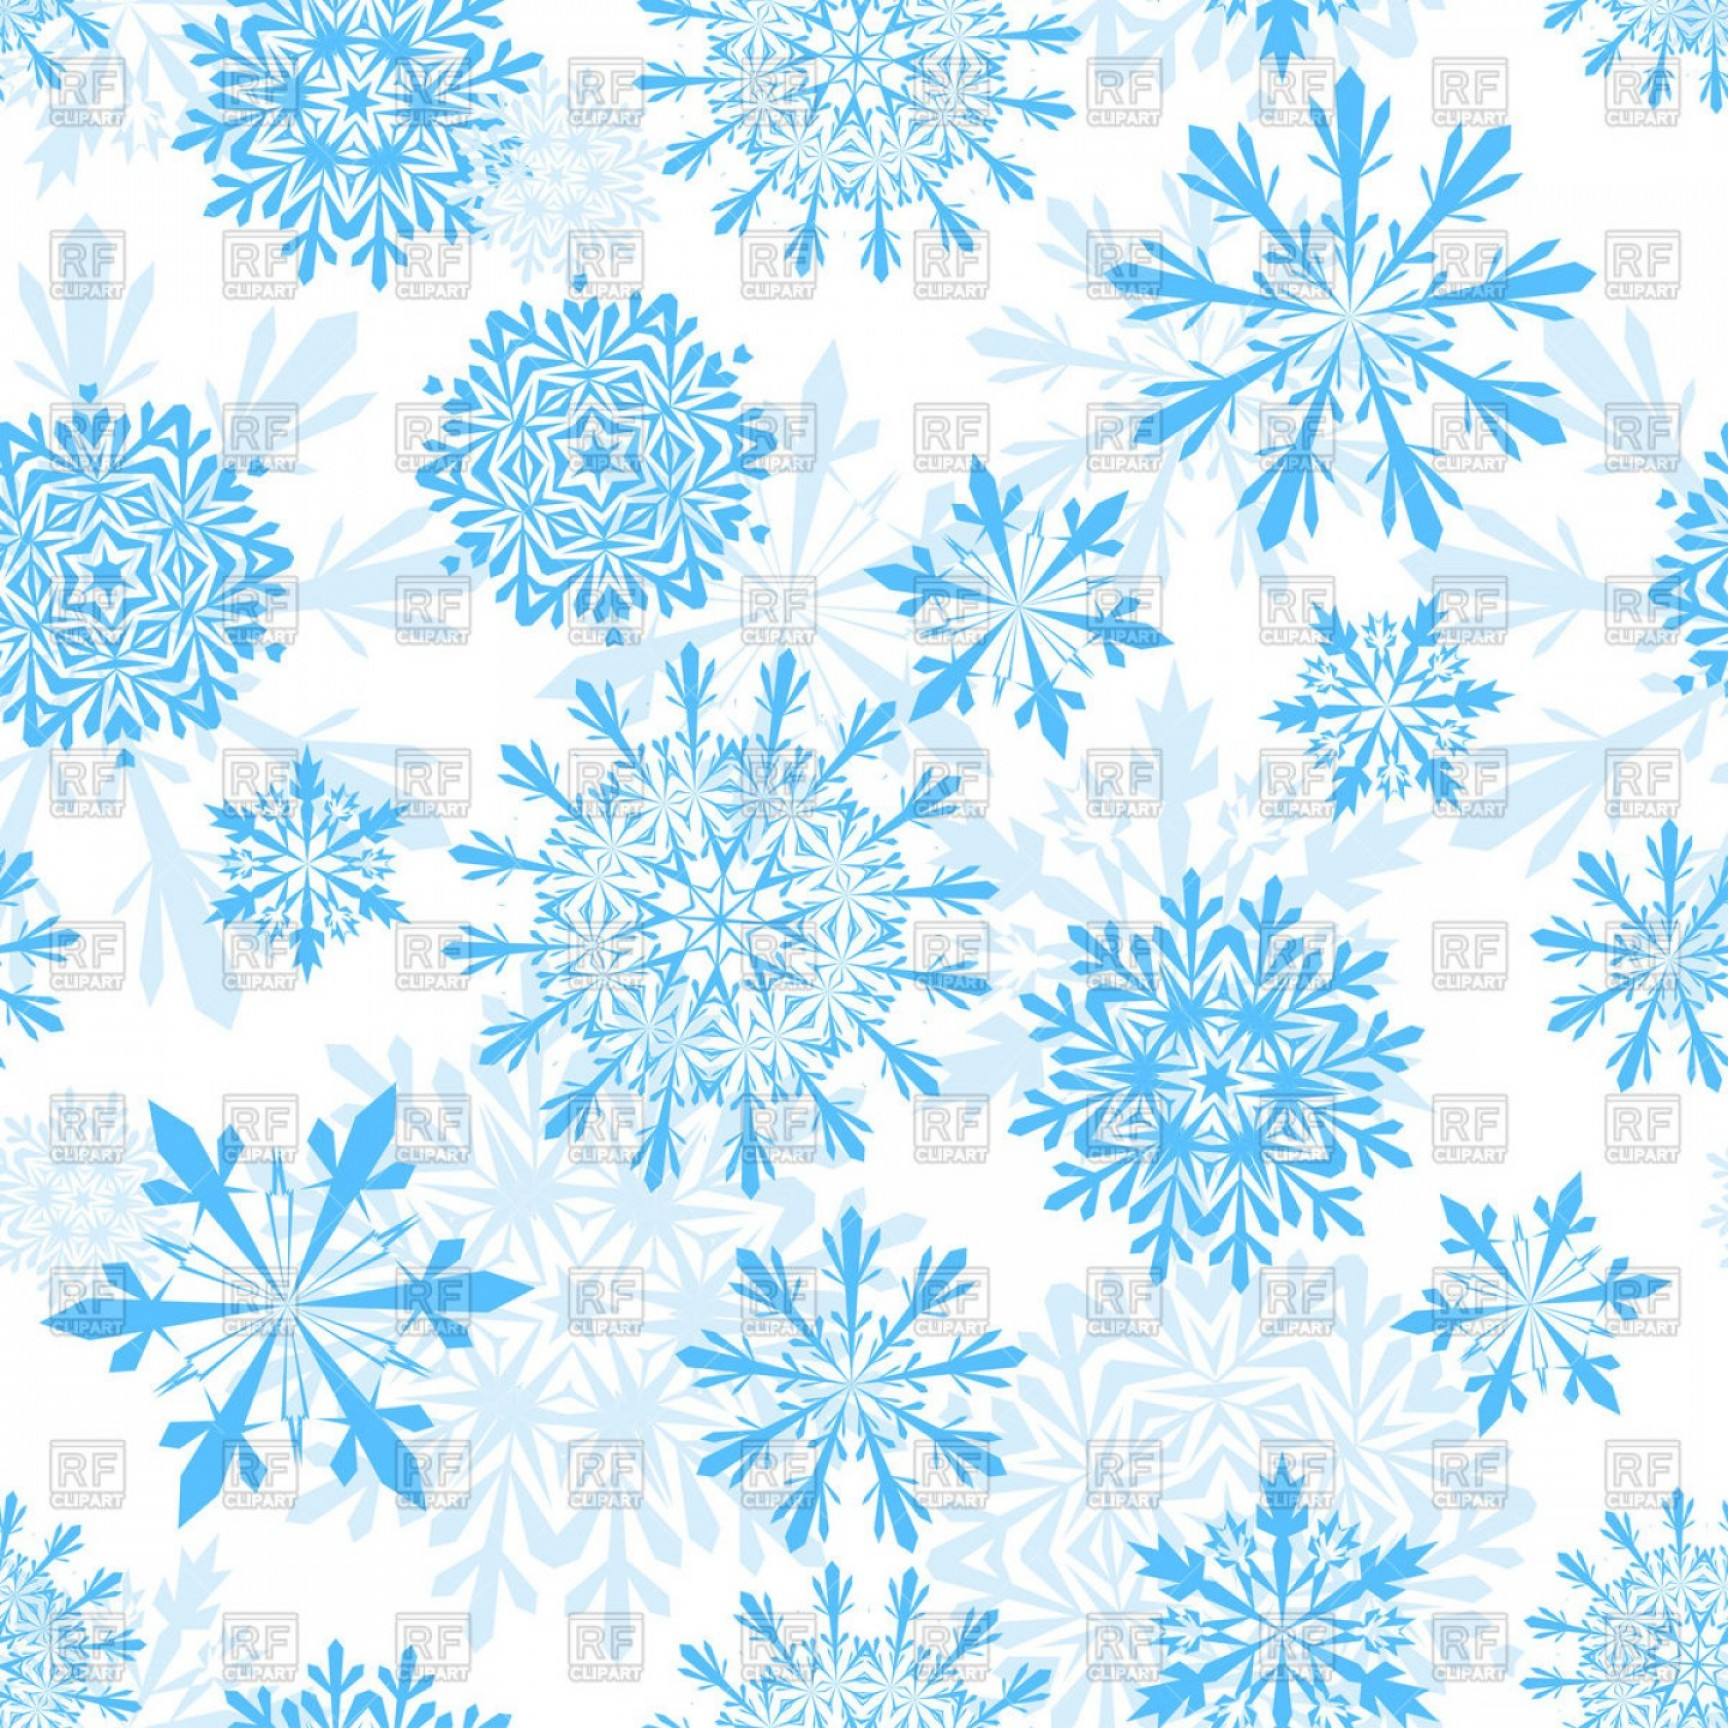 Free Snowflake Background Clipart Seamless Winter Background With.